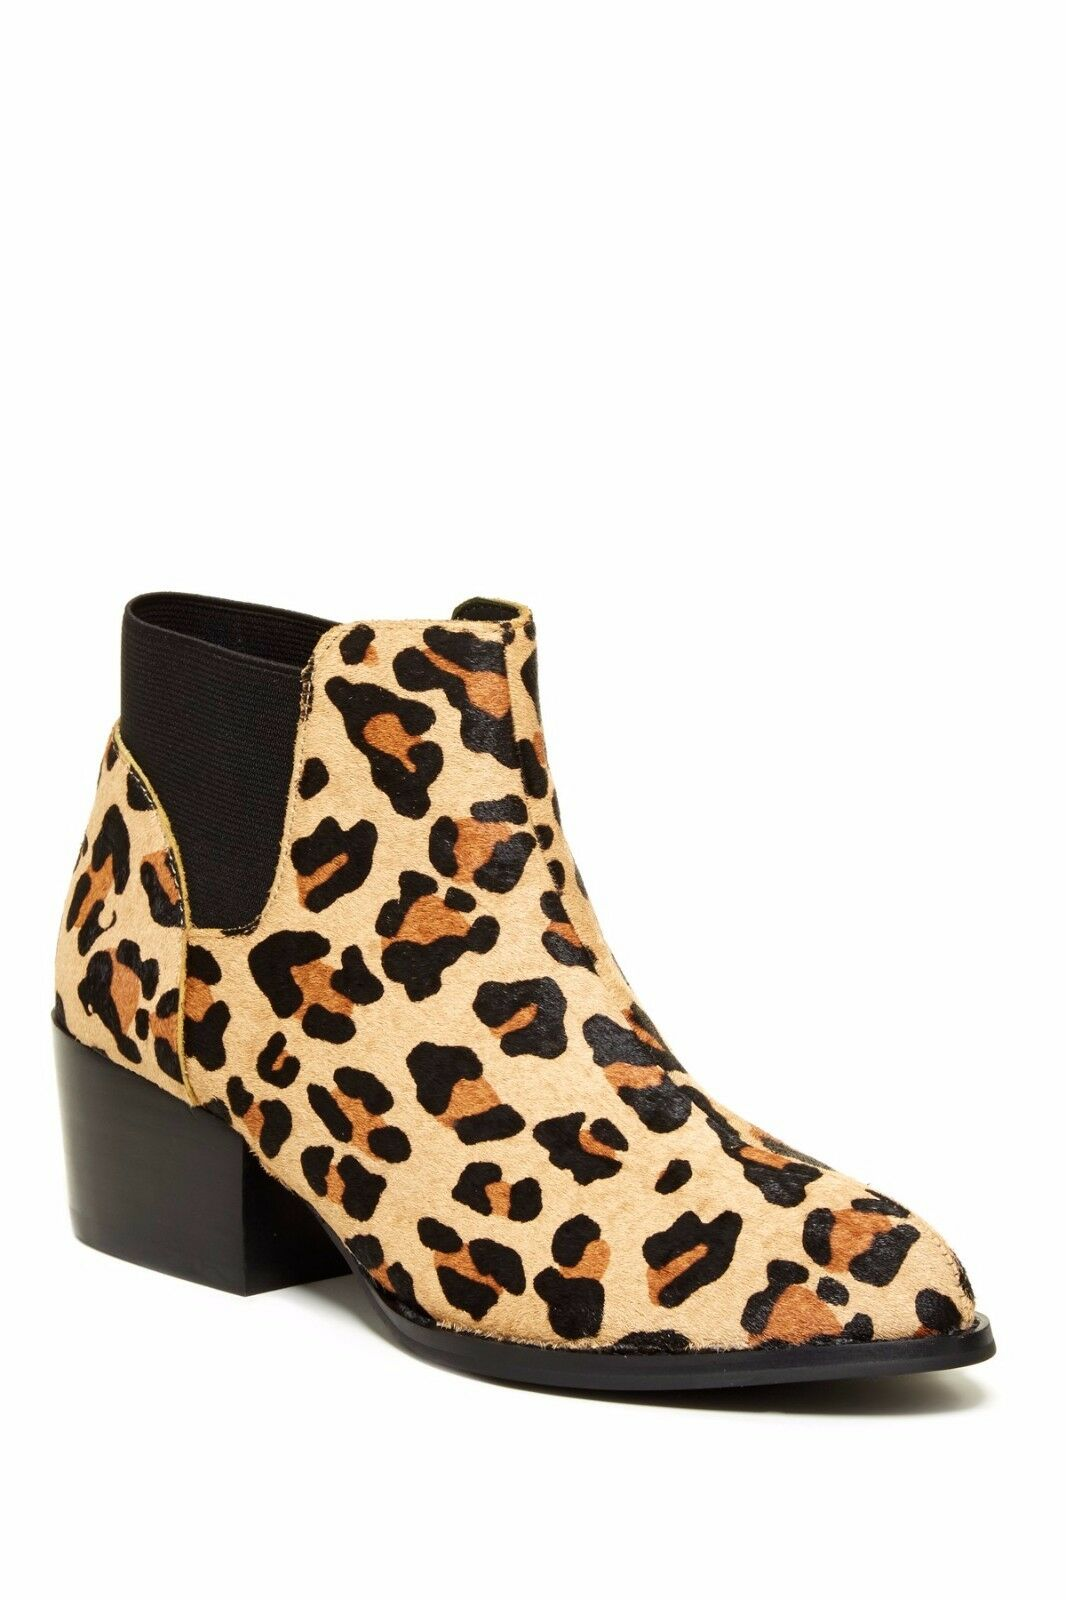 New Steve Madden Palace Genuine Dyed Cow Hair Boots women's sz 8.5